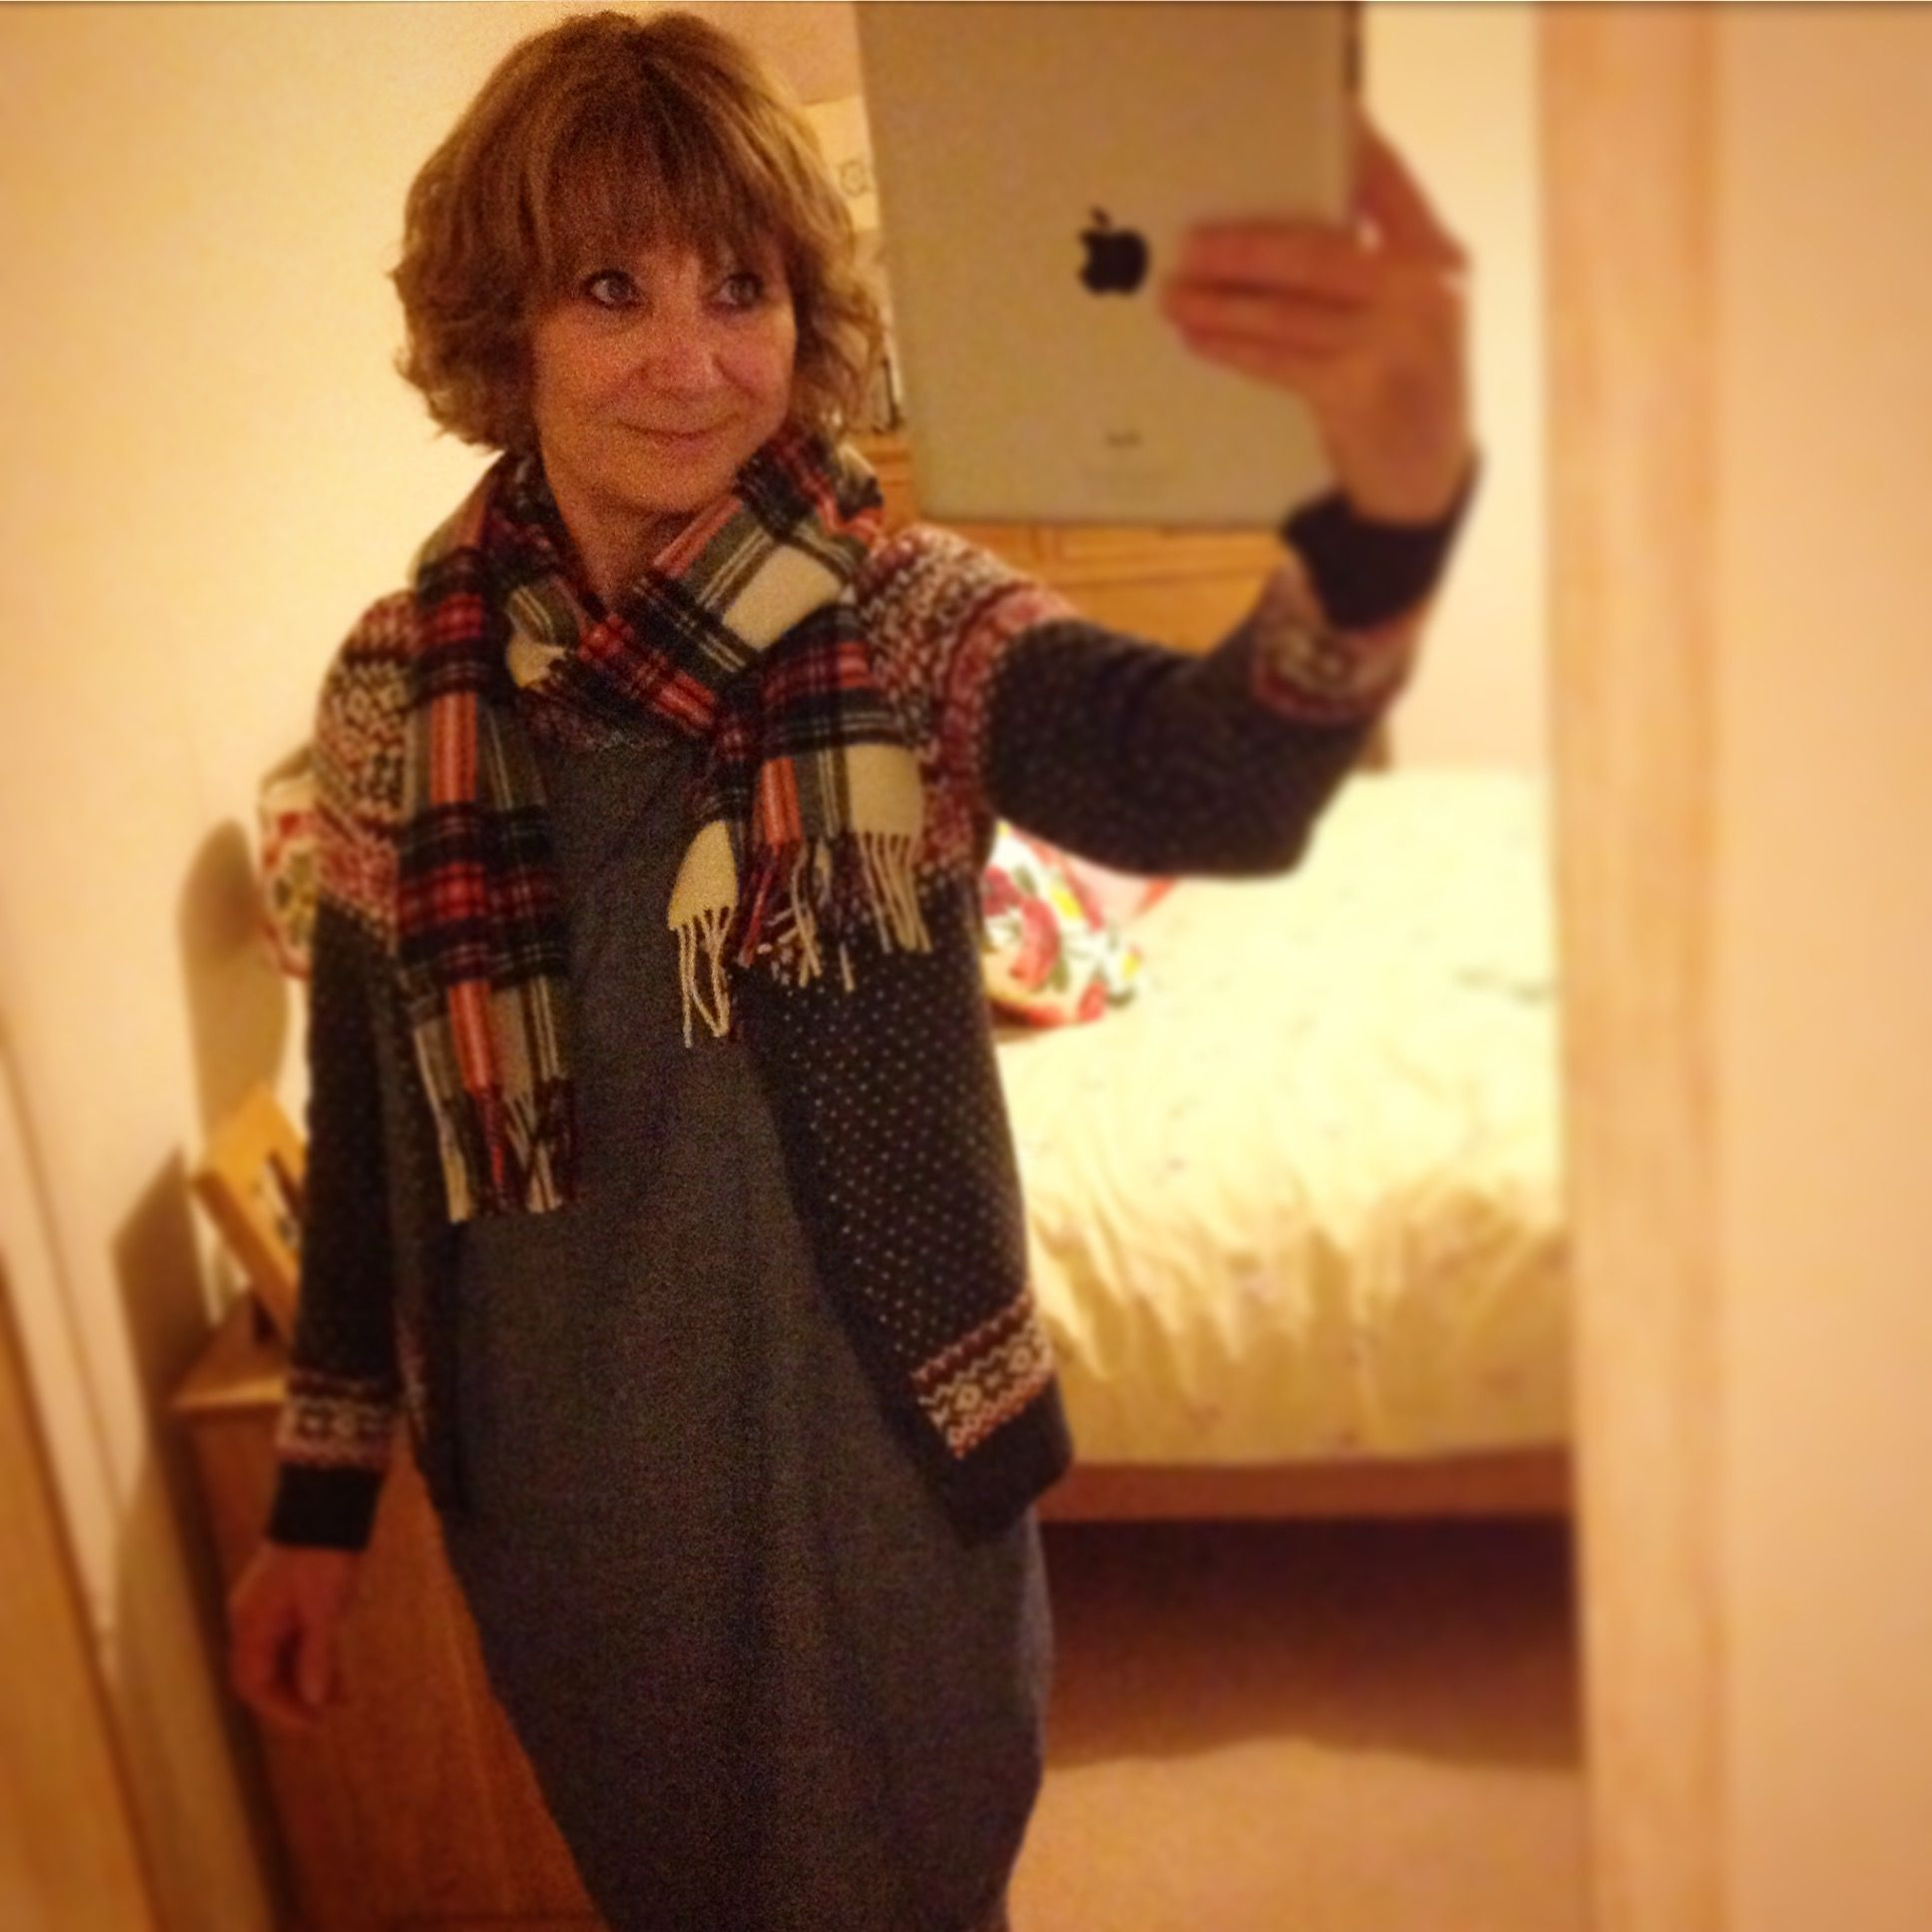 The Hygge look. Cosy winter layering.